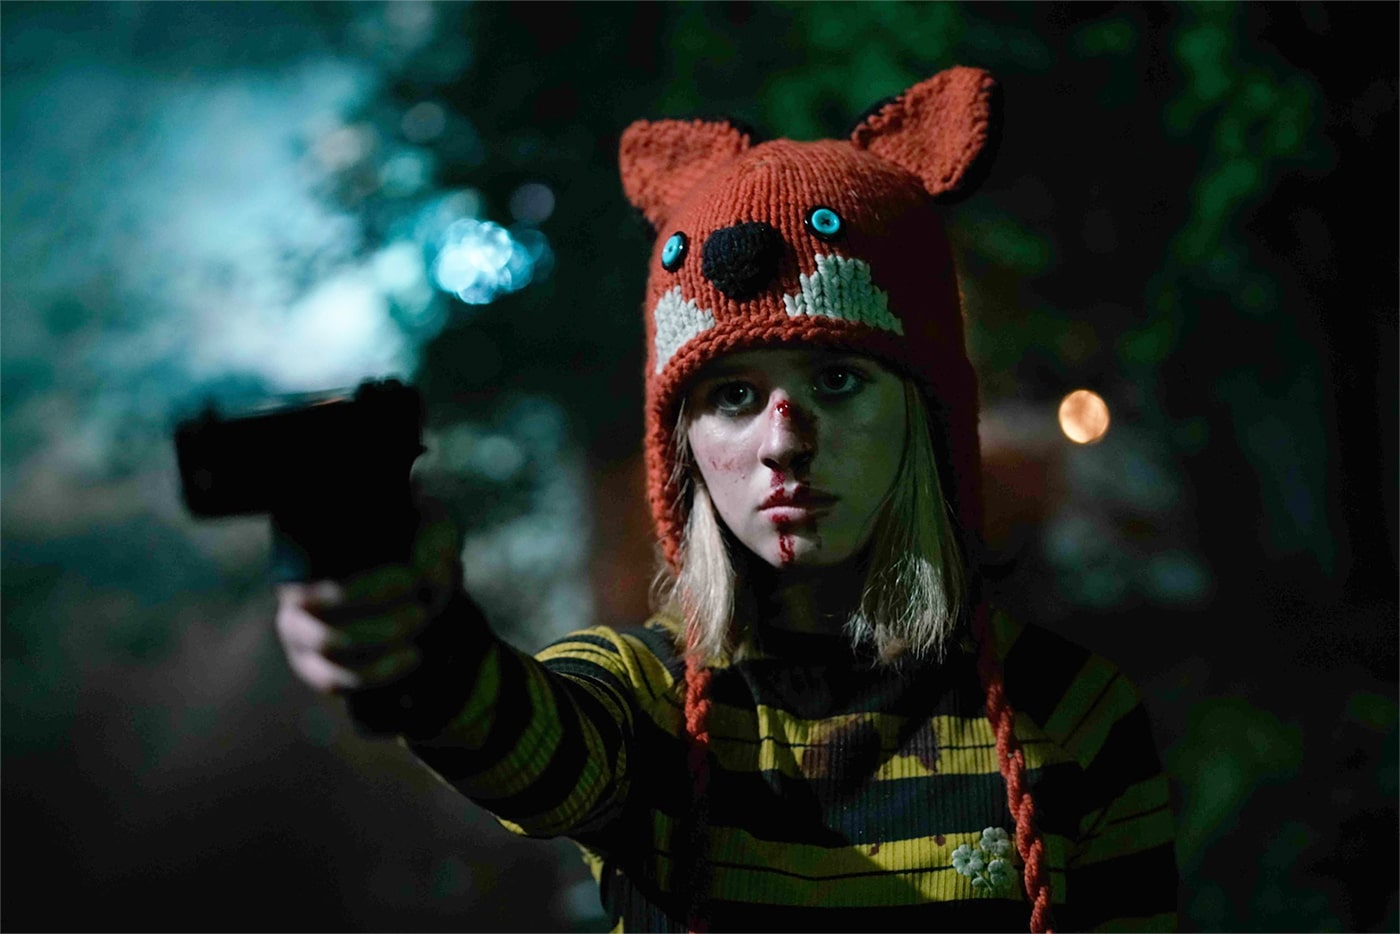 [Review] Home Intruders Pick the Wrong BECKY to Mess With